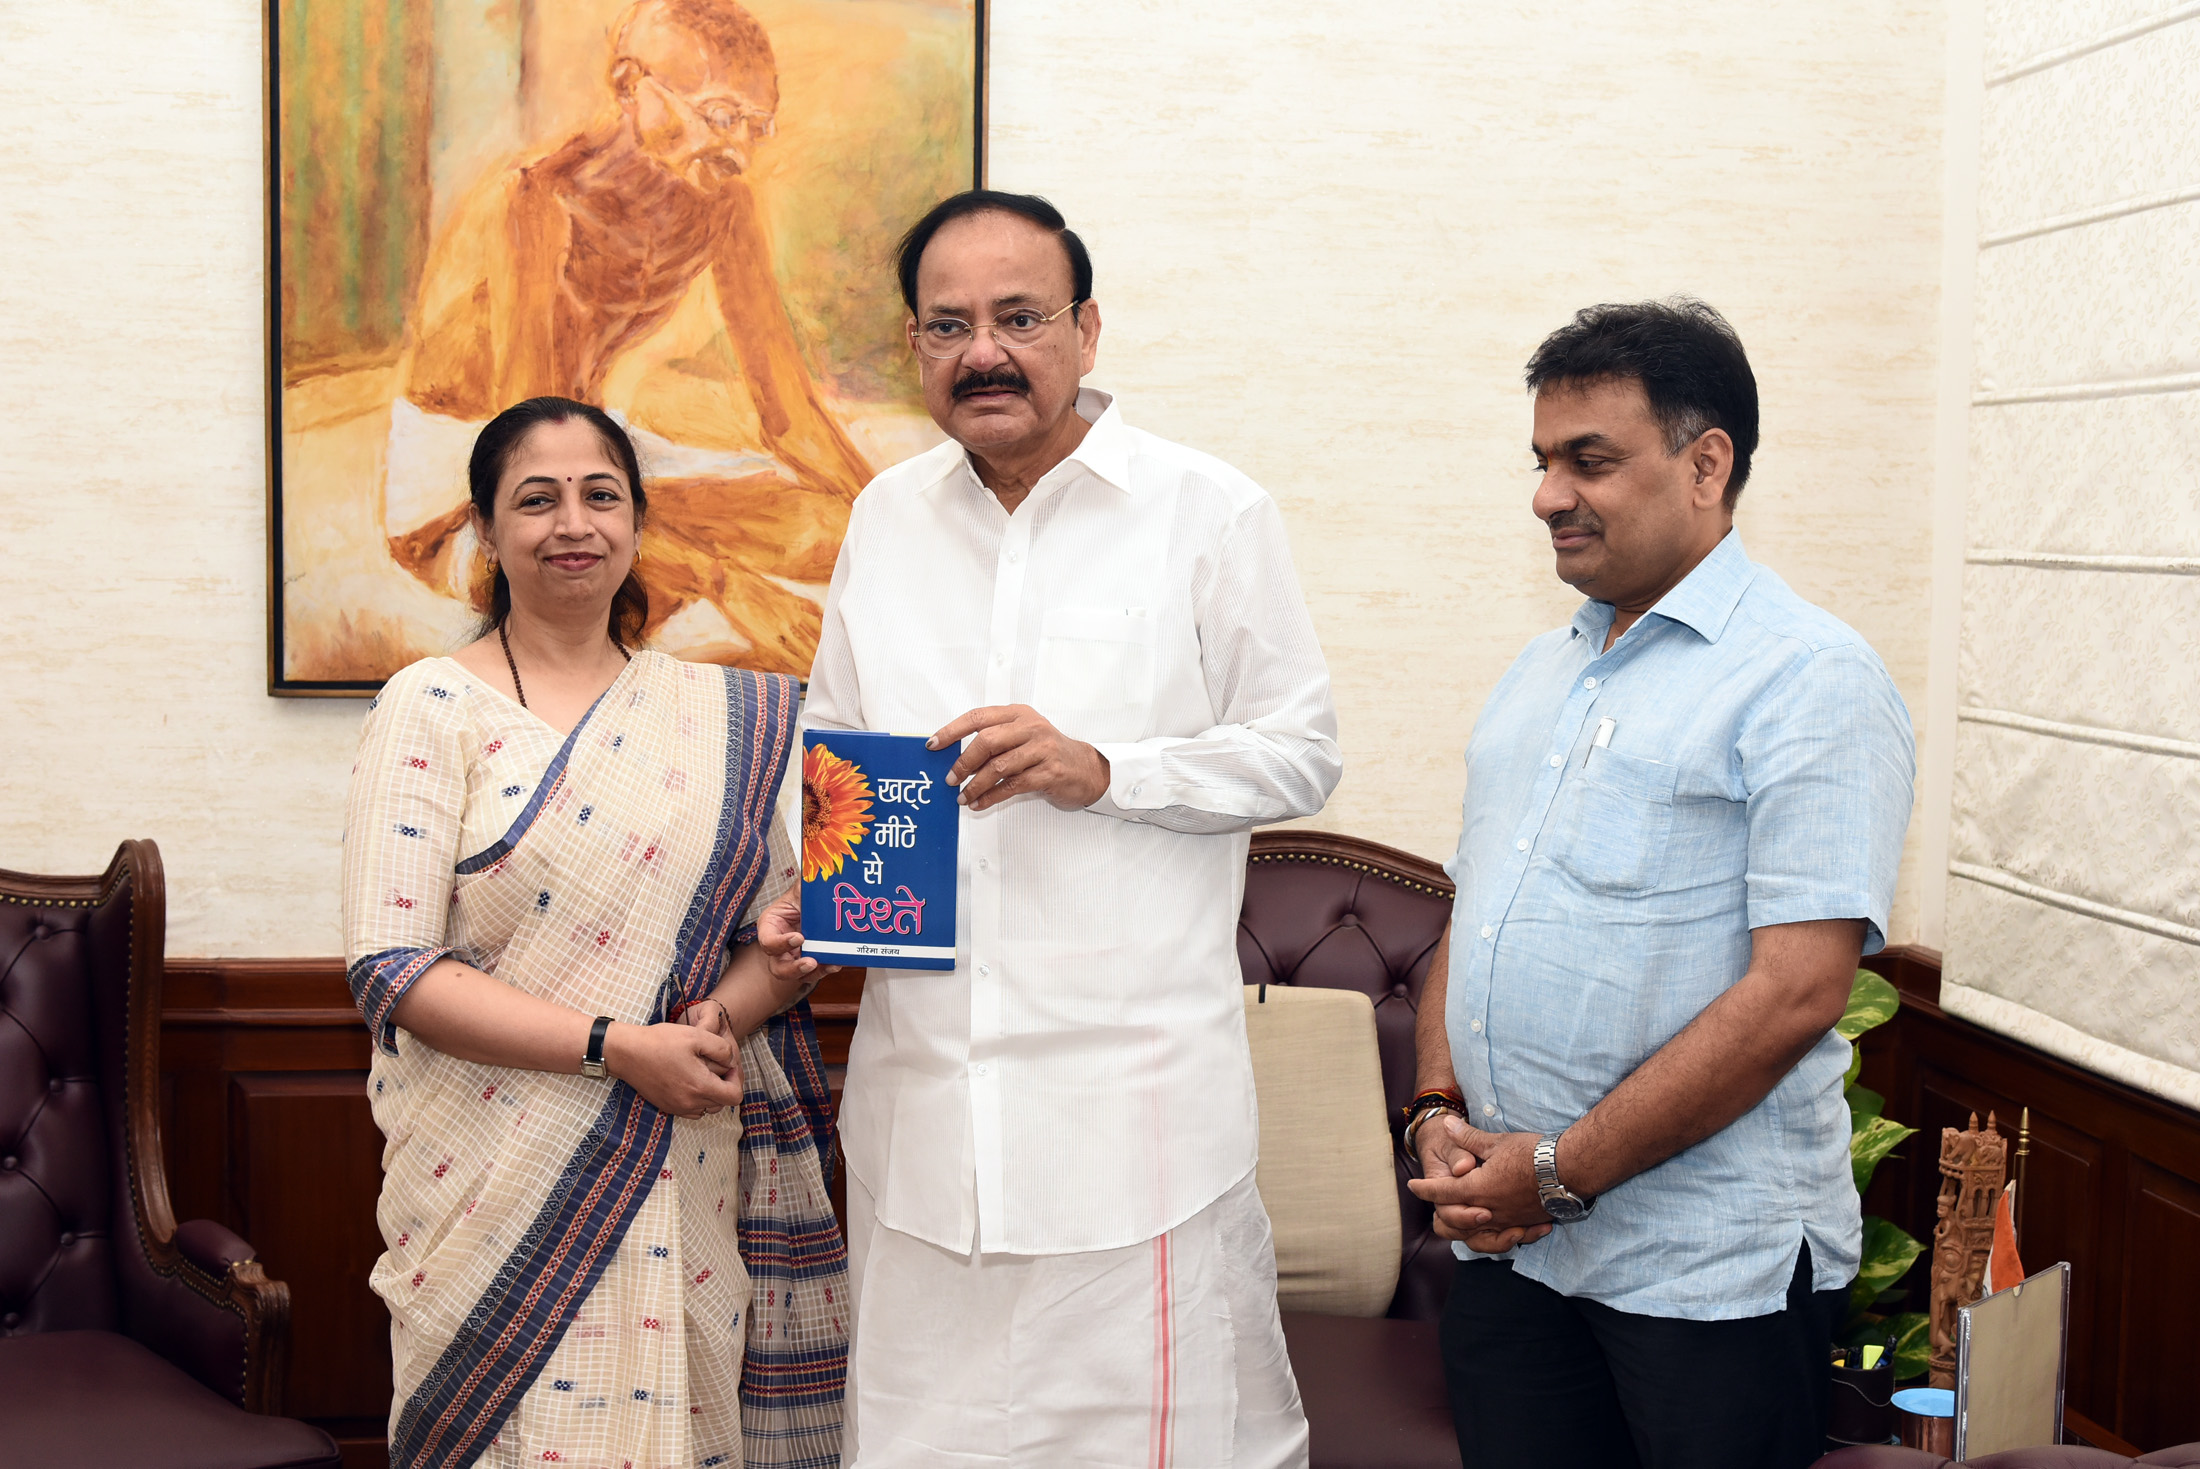 """The Vice President, Shri M. Venkaiah Naidu receiving a Book titled """"Khatte Meethe Se Risthe"""" authored by Smt. Garima Sanjay, in New Delhi on July 16, 2019."""